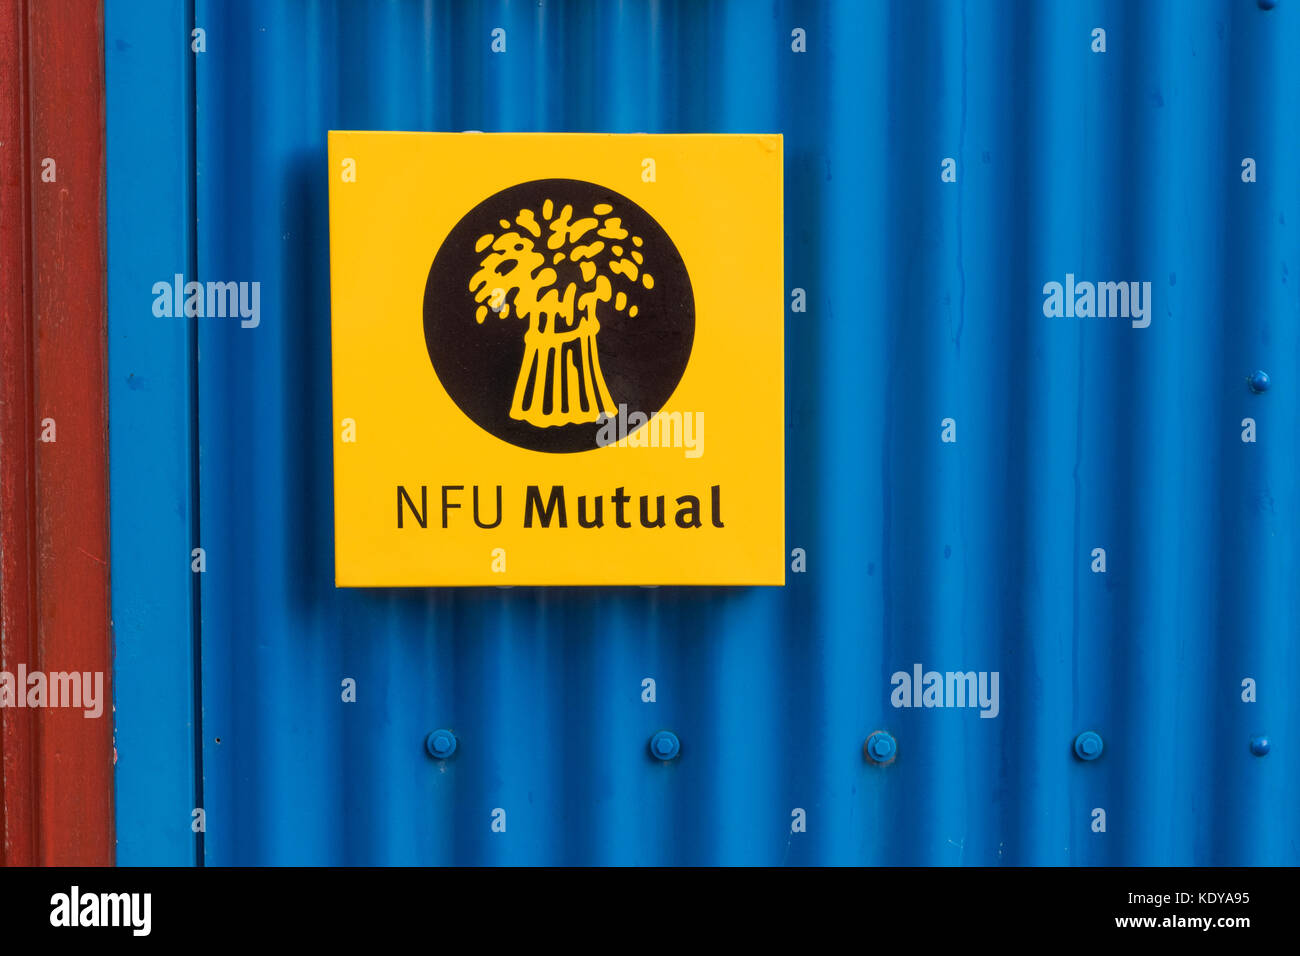 NFU Mutual, Lerwick, Shetland Islands, Scotland, UK - Stock Image